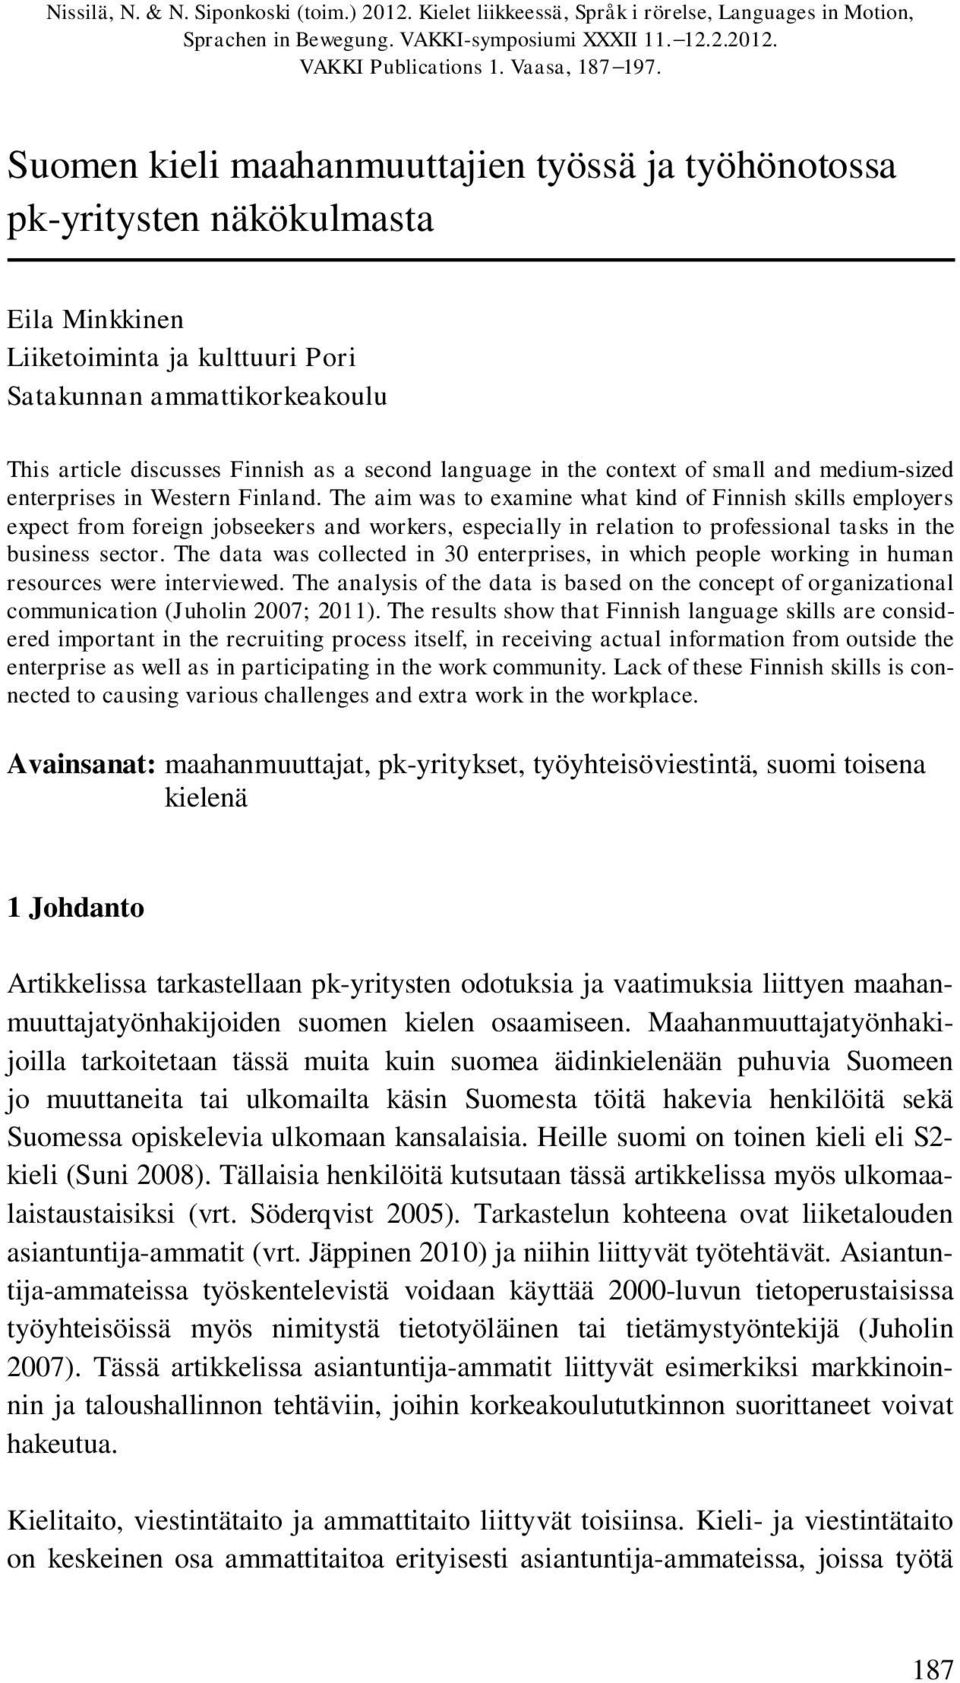 language in the context of small and medium-sized enterprises in Western Finland.